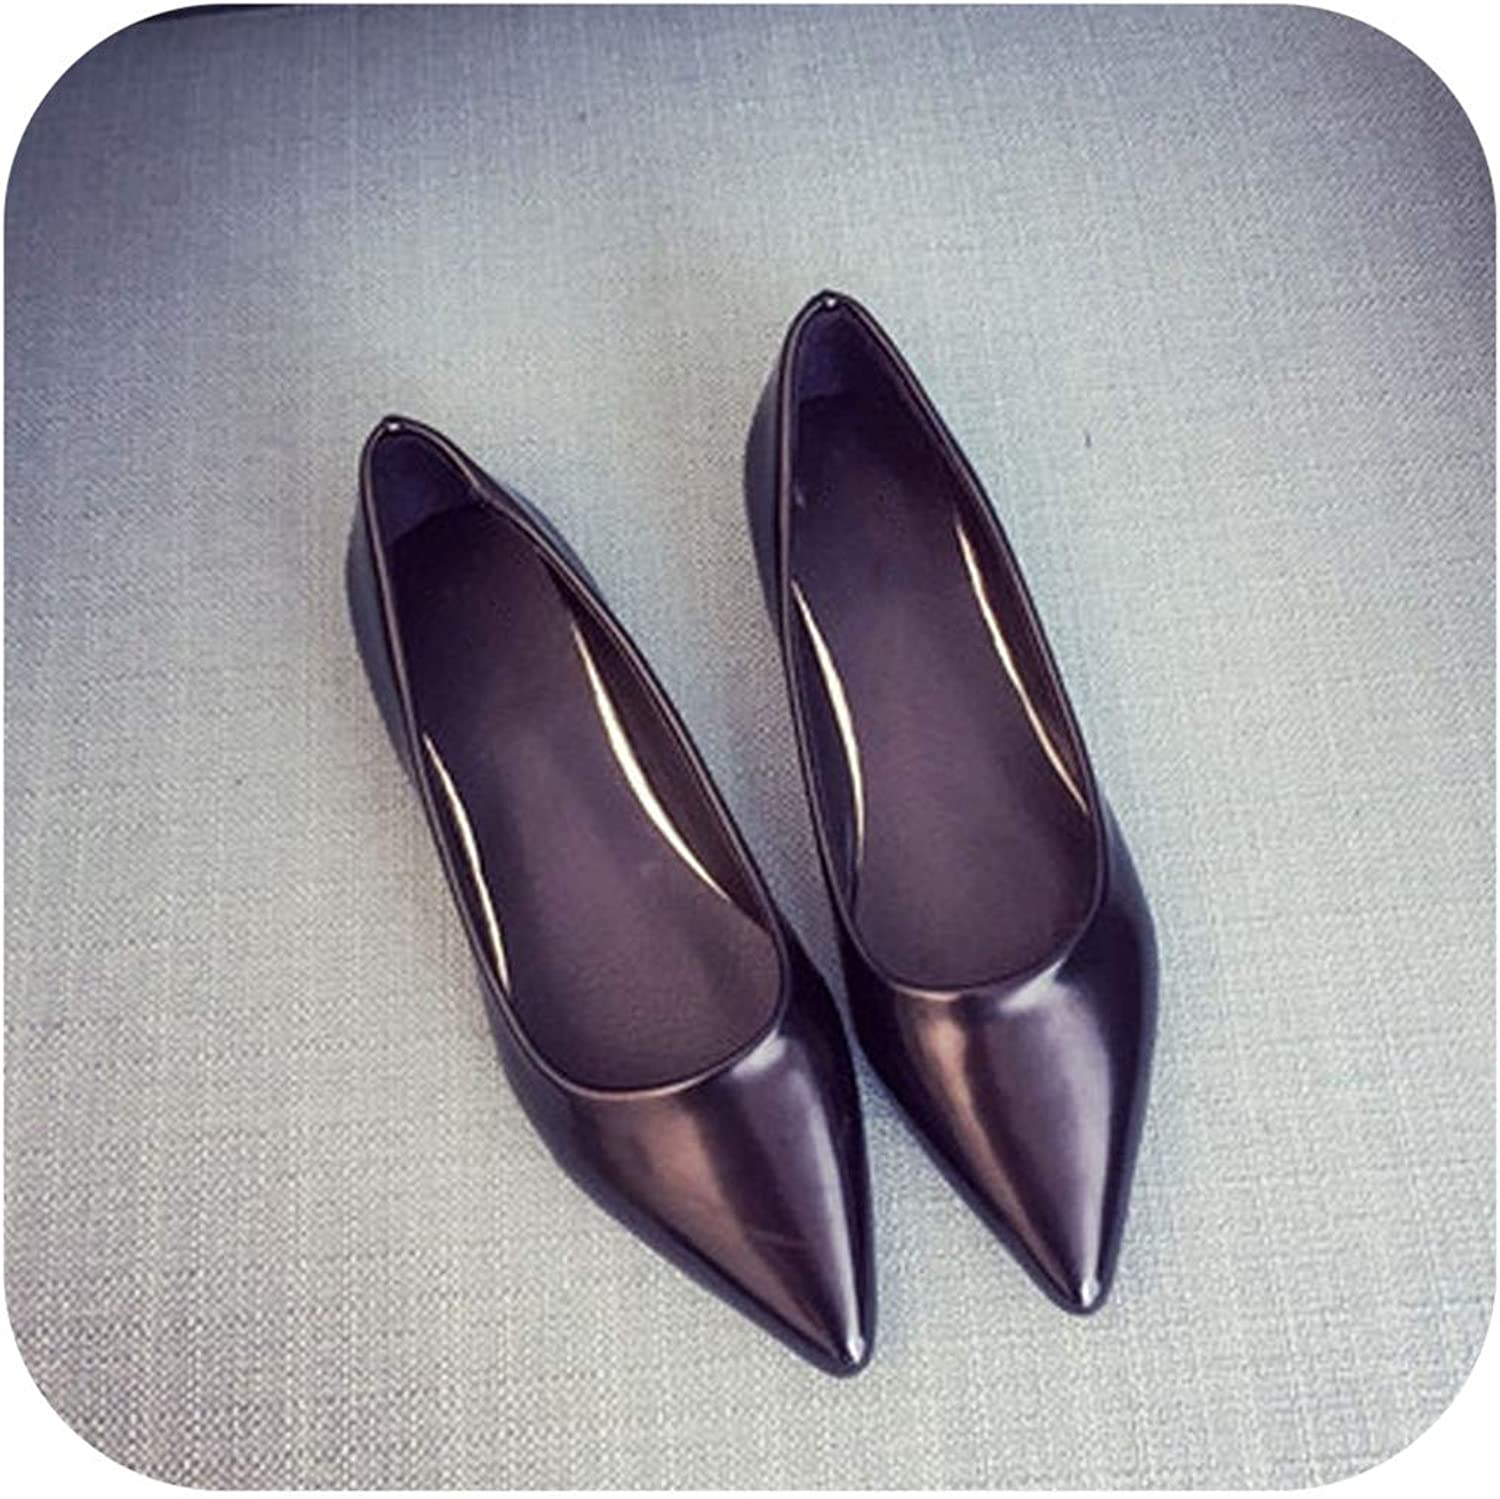 Fashion Japanned Leather Pointed Toe Flat Shallow Mouth Women's Flat Heel shoes Pink Leather Single shoes